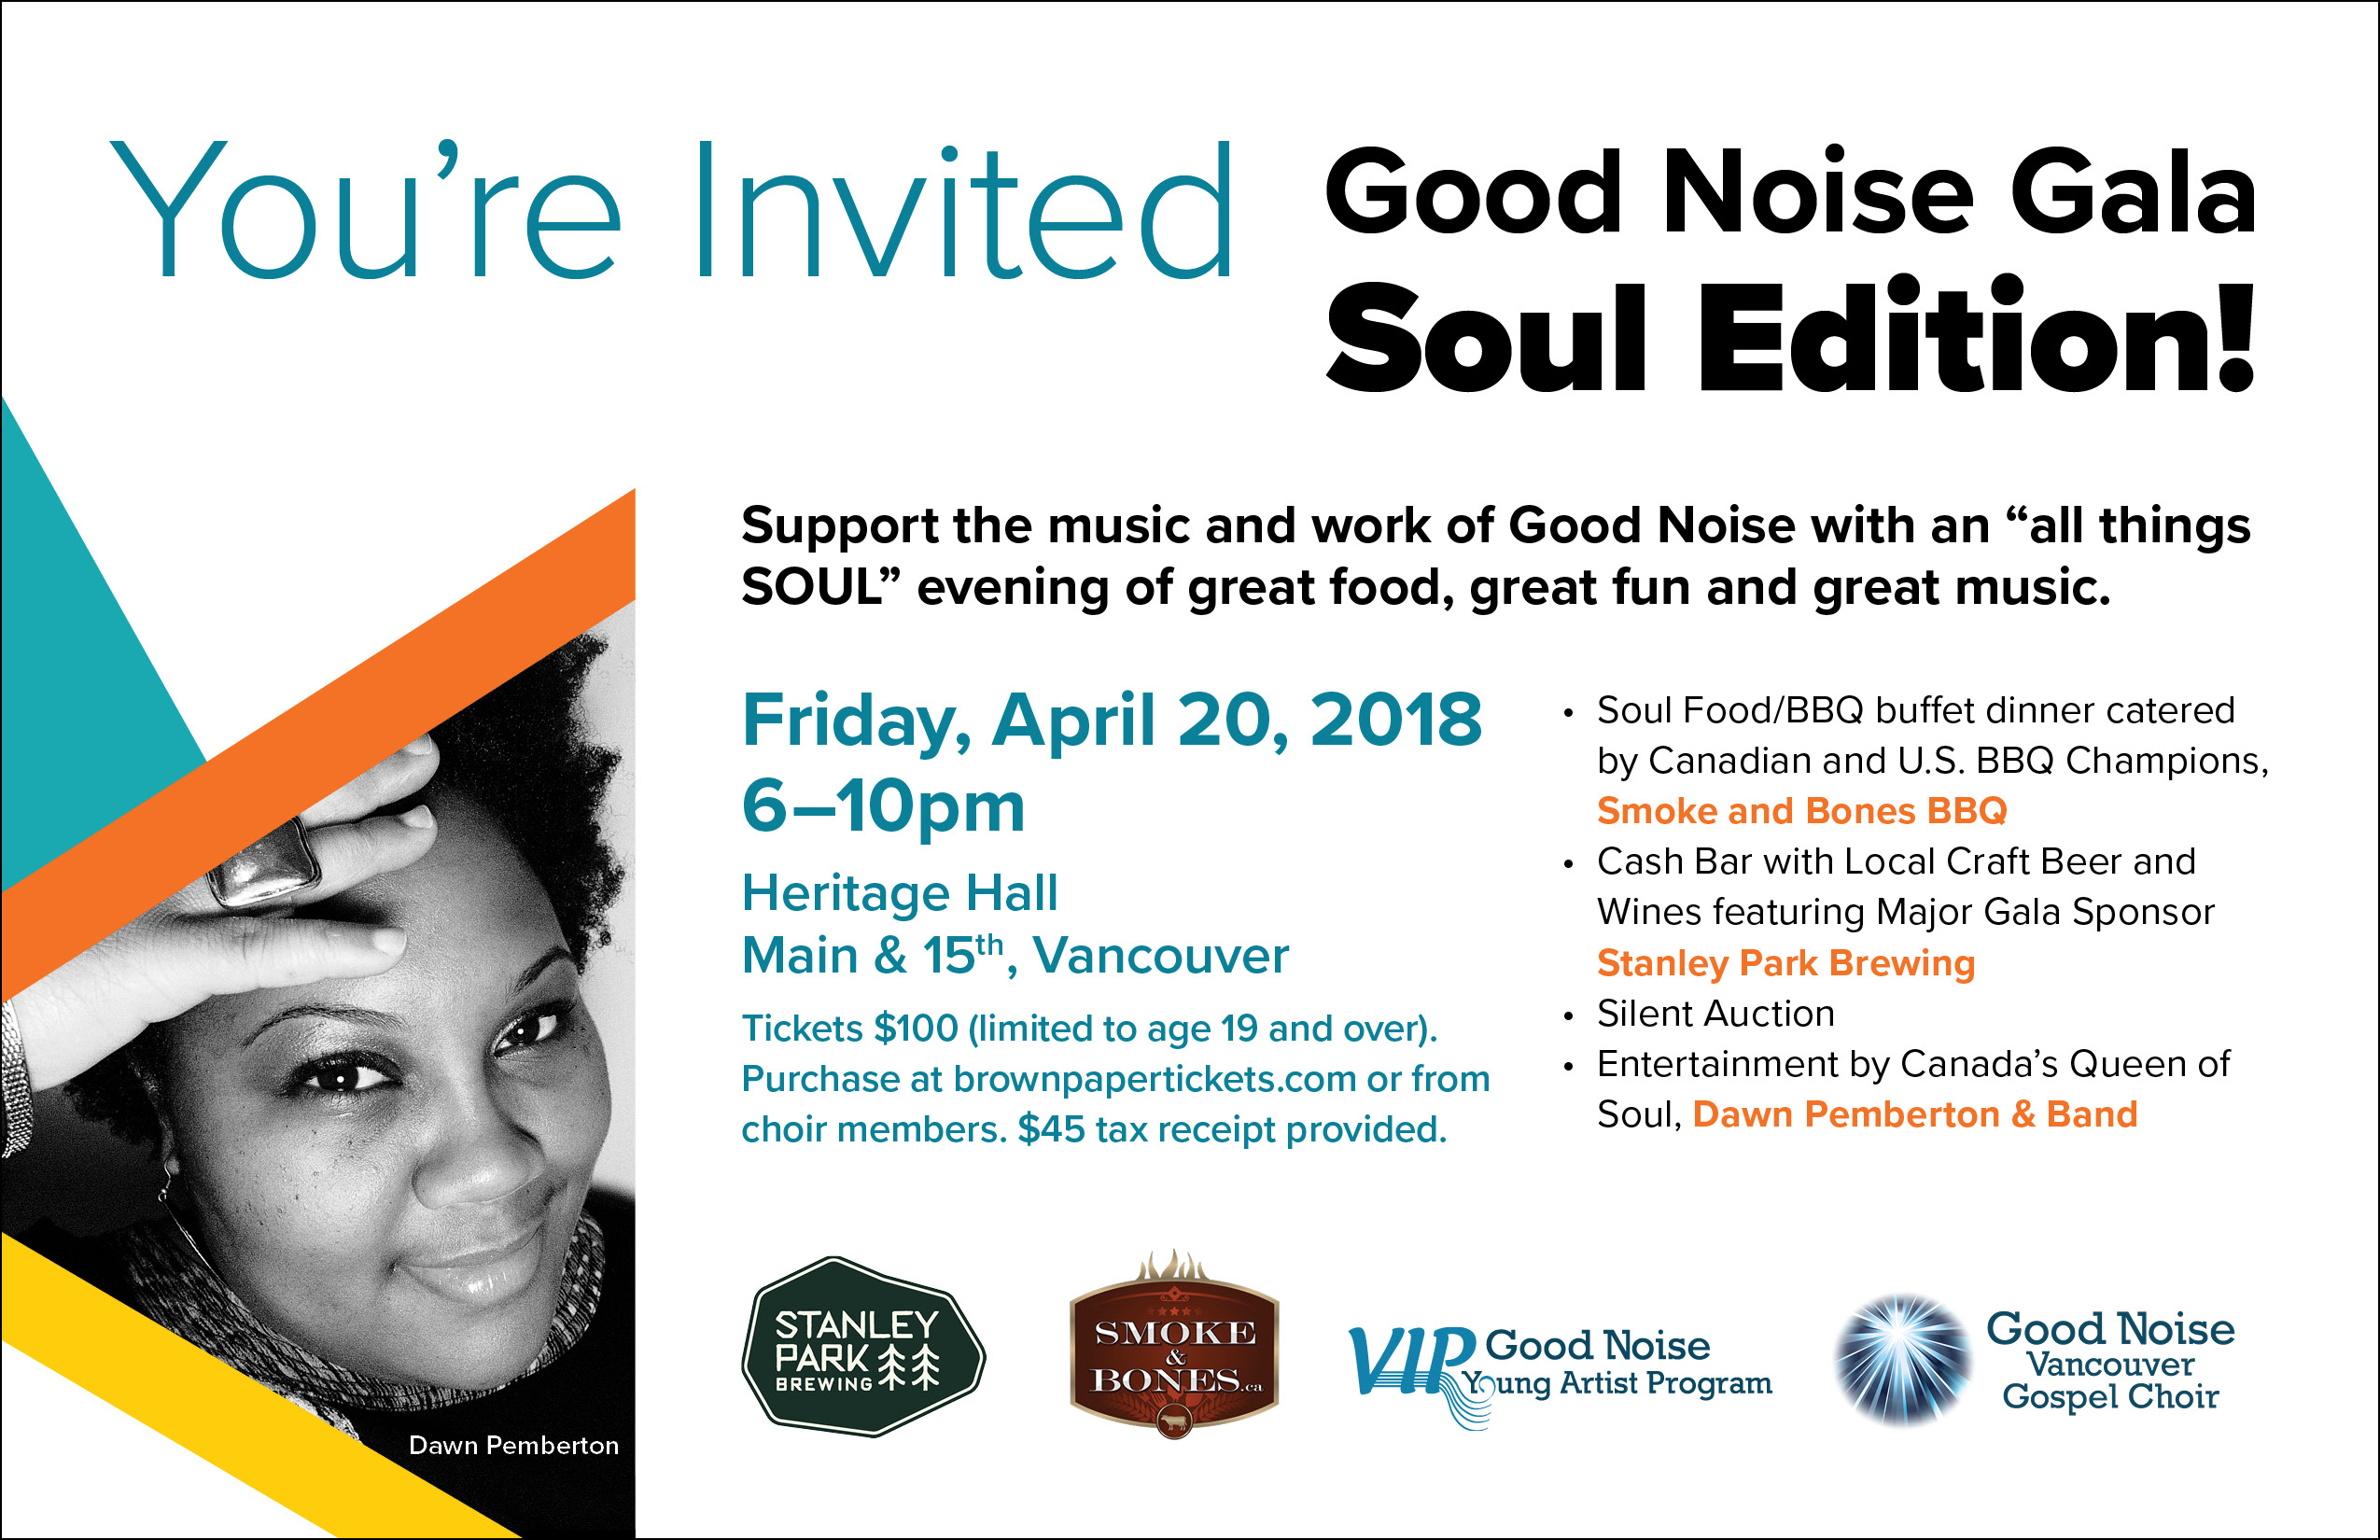 Good Noise Gala - The Soul Edition! - Good Noise Vancouver